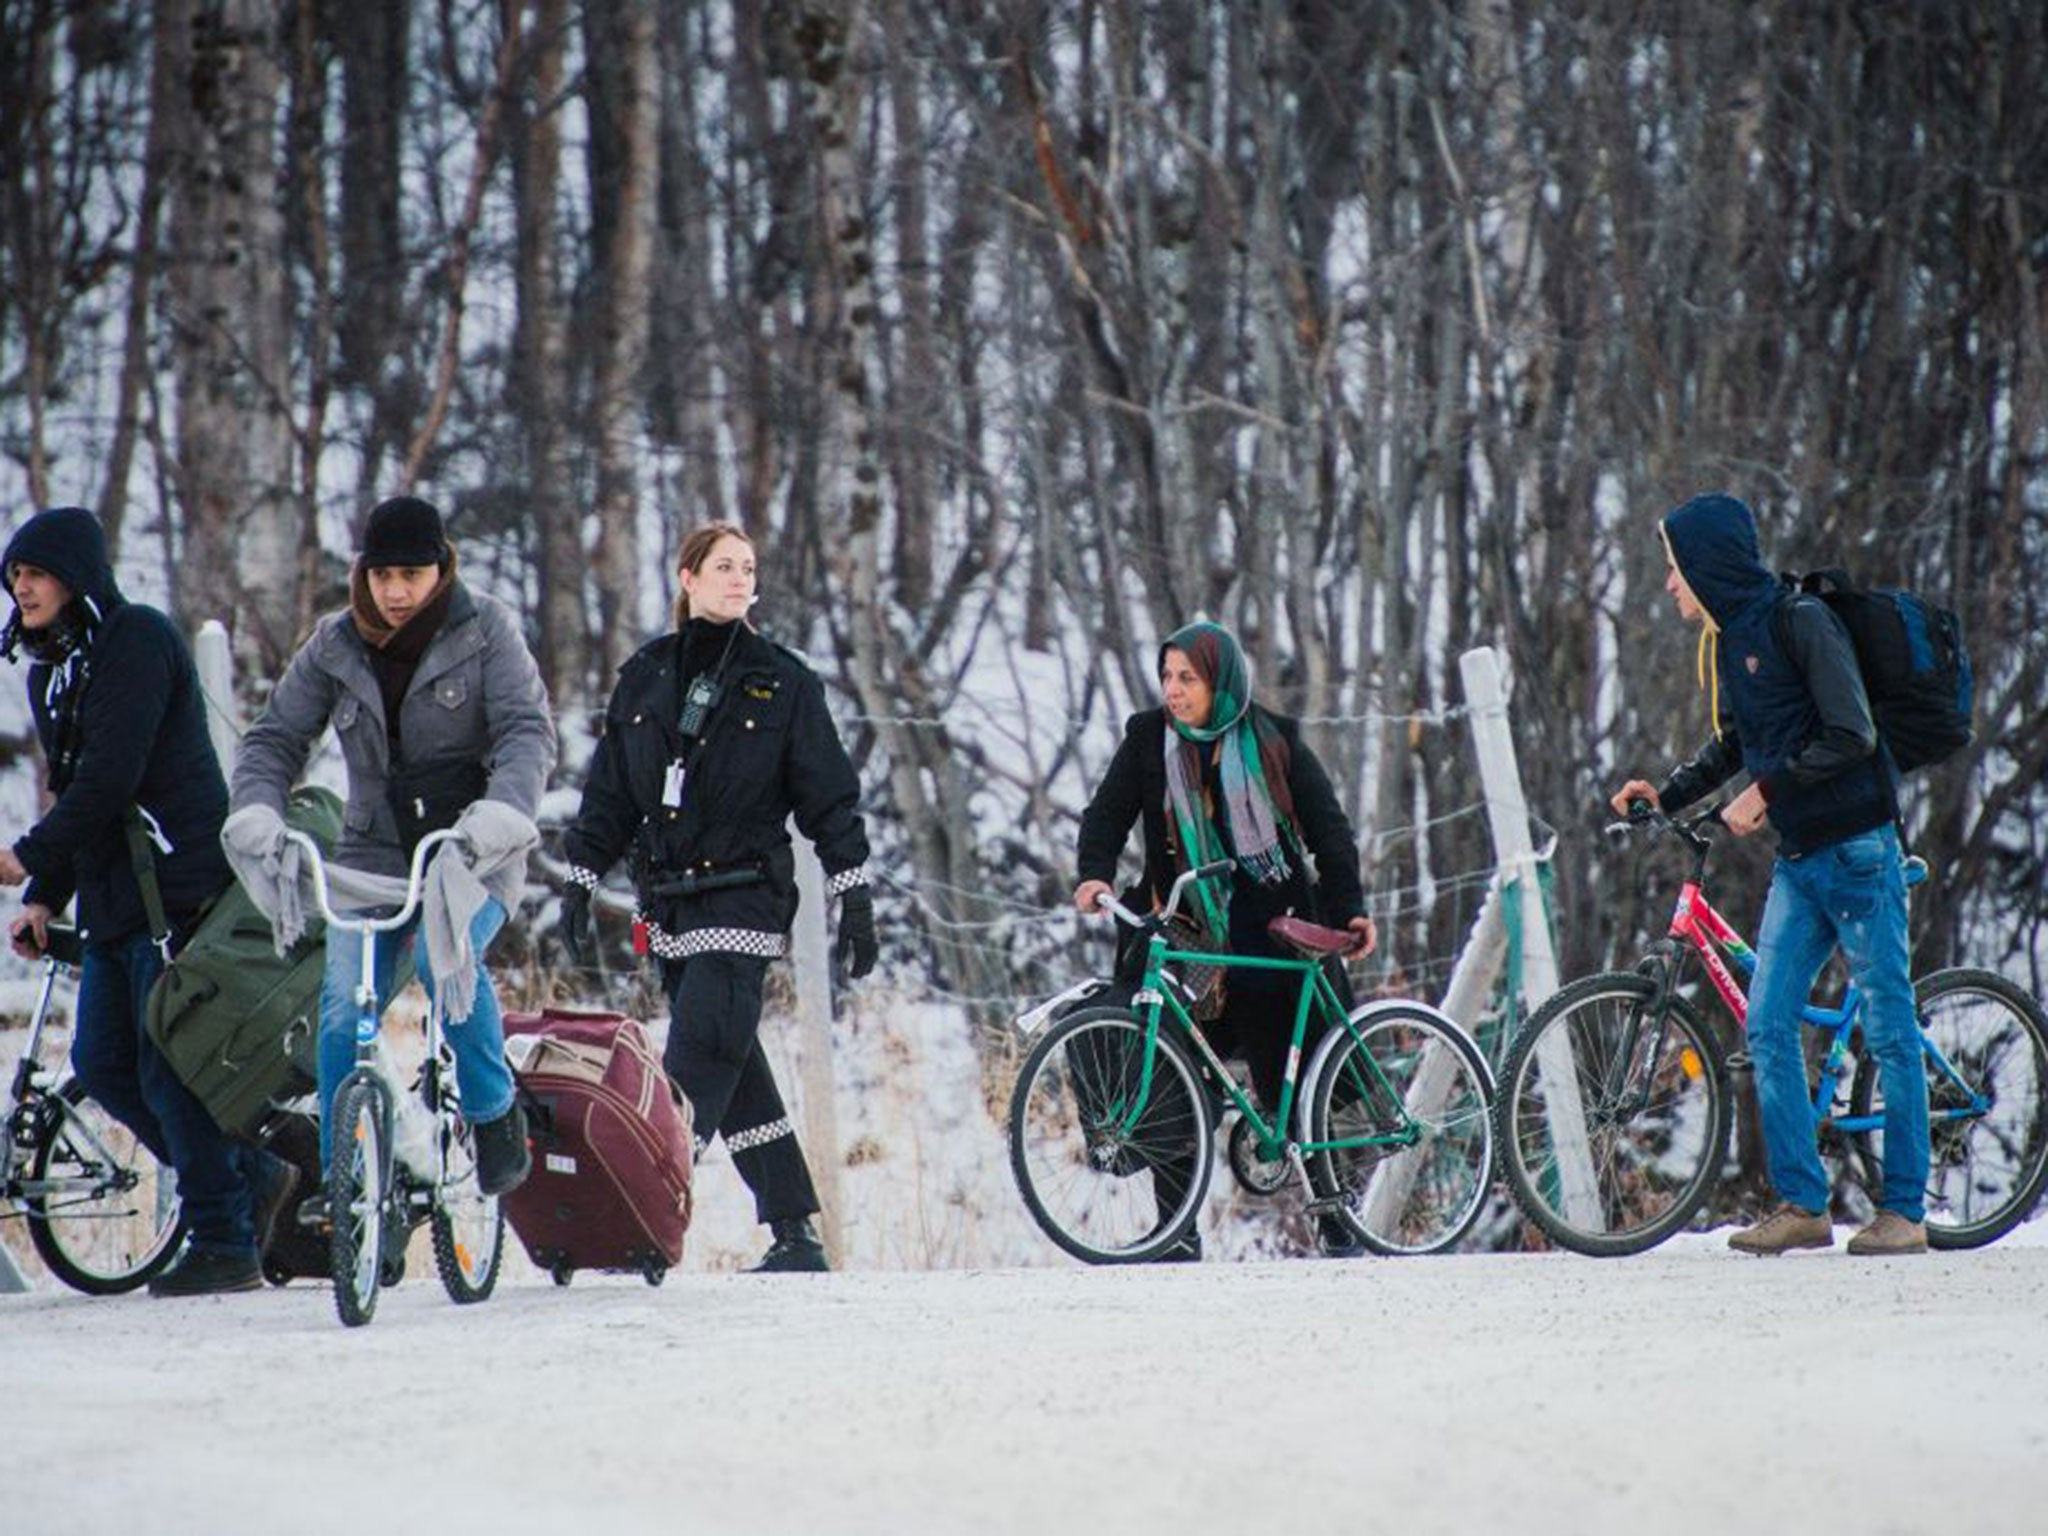 refugee crisis norway tells 5 500 foreigners who arrived on bikes